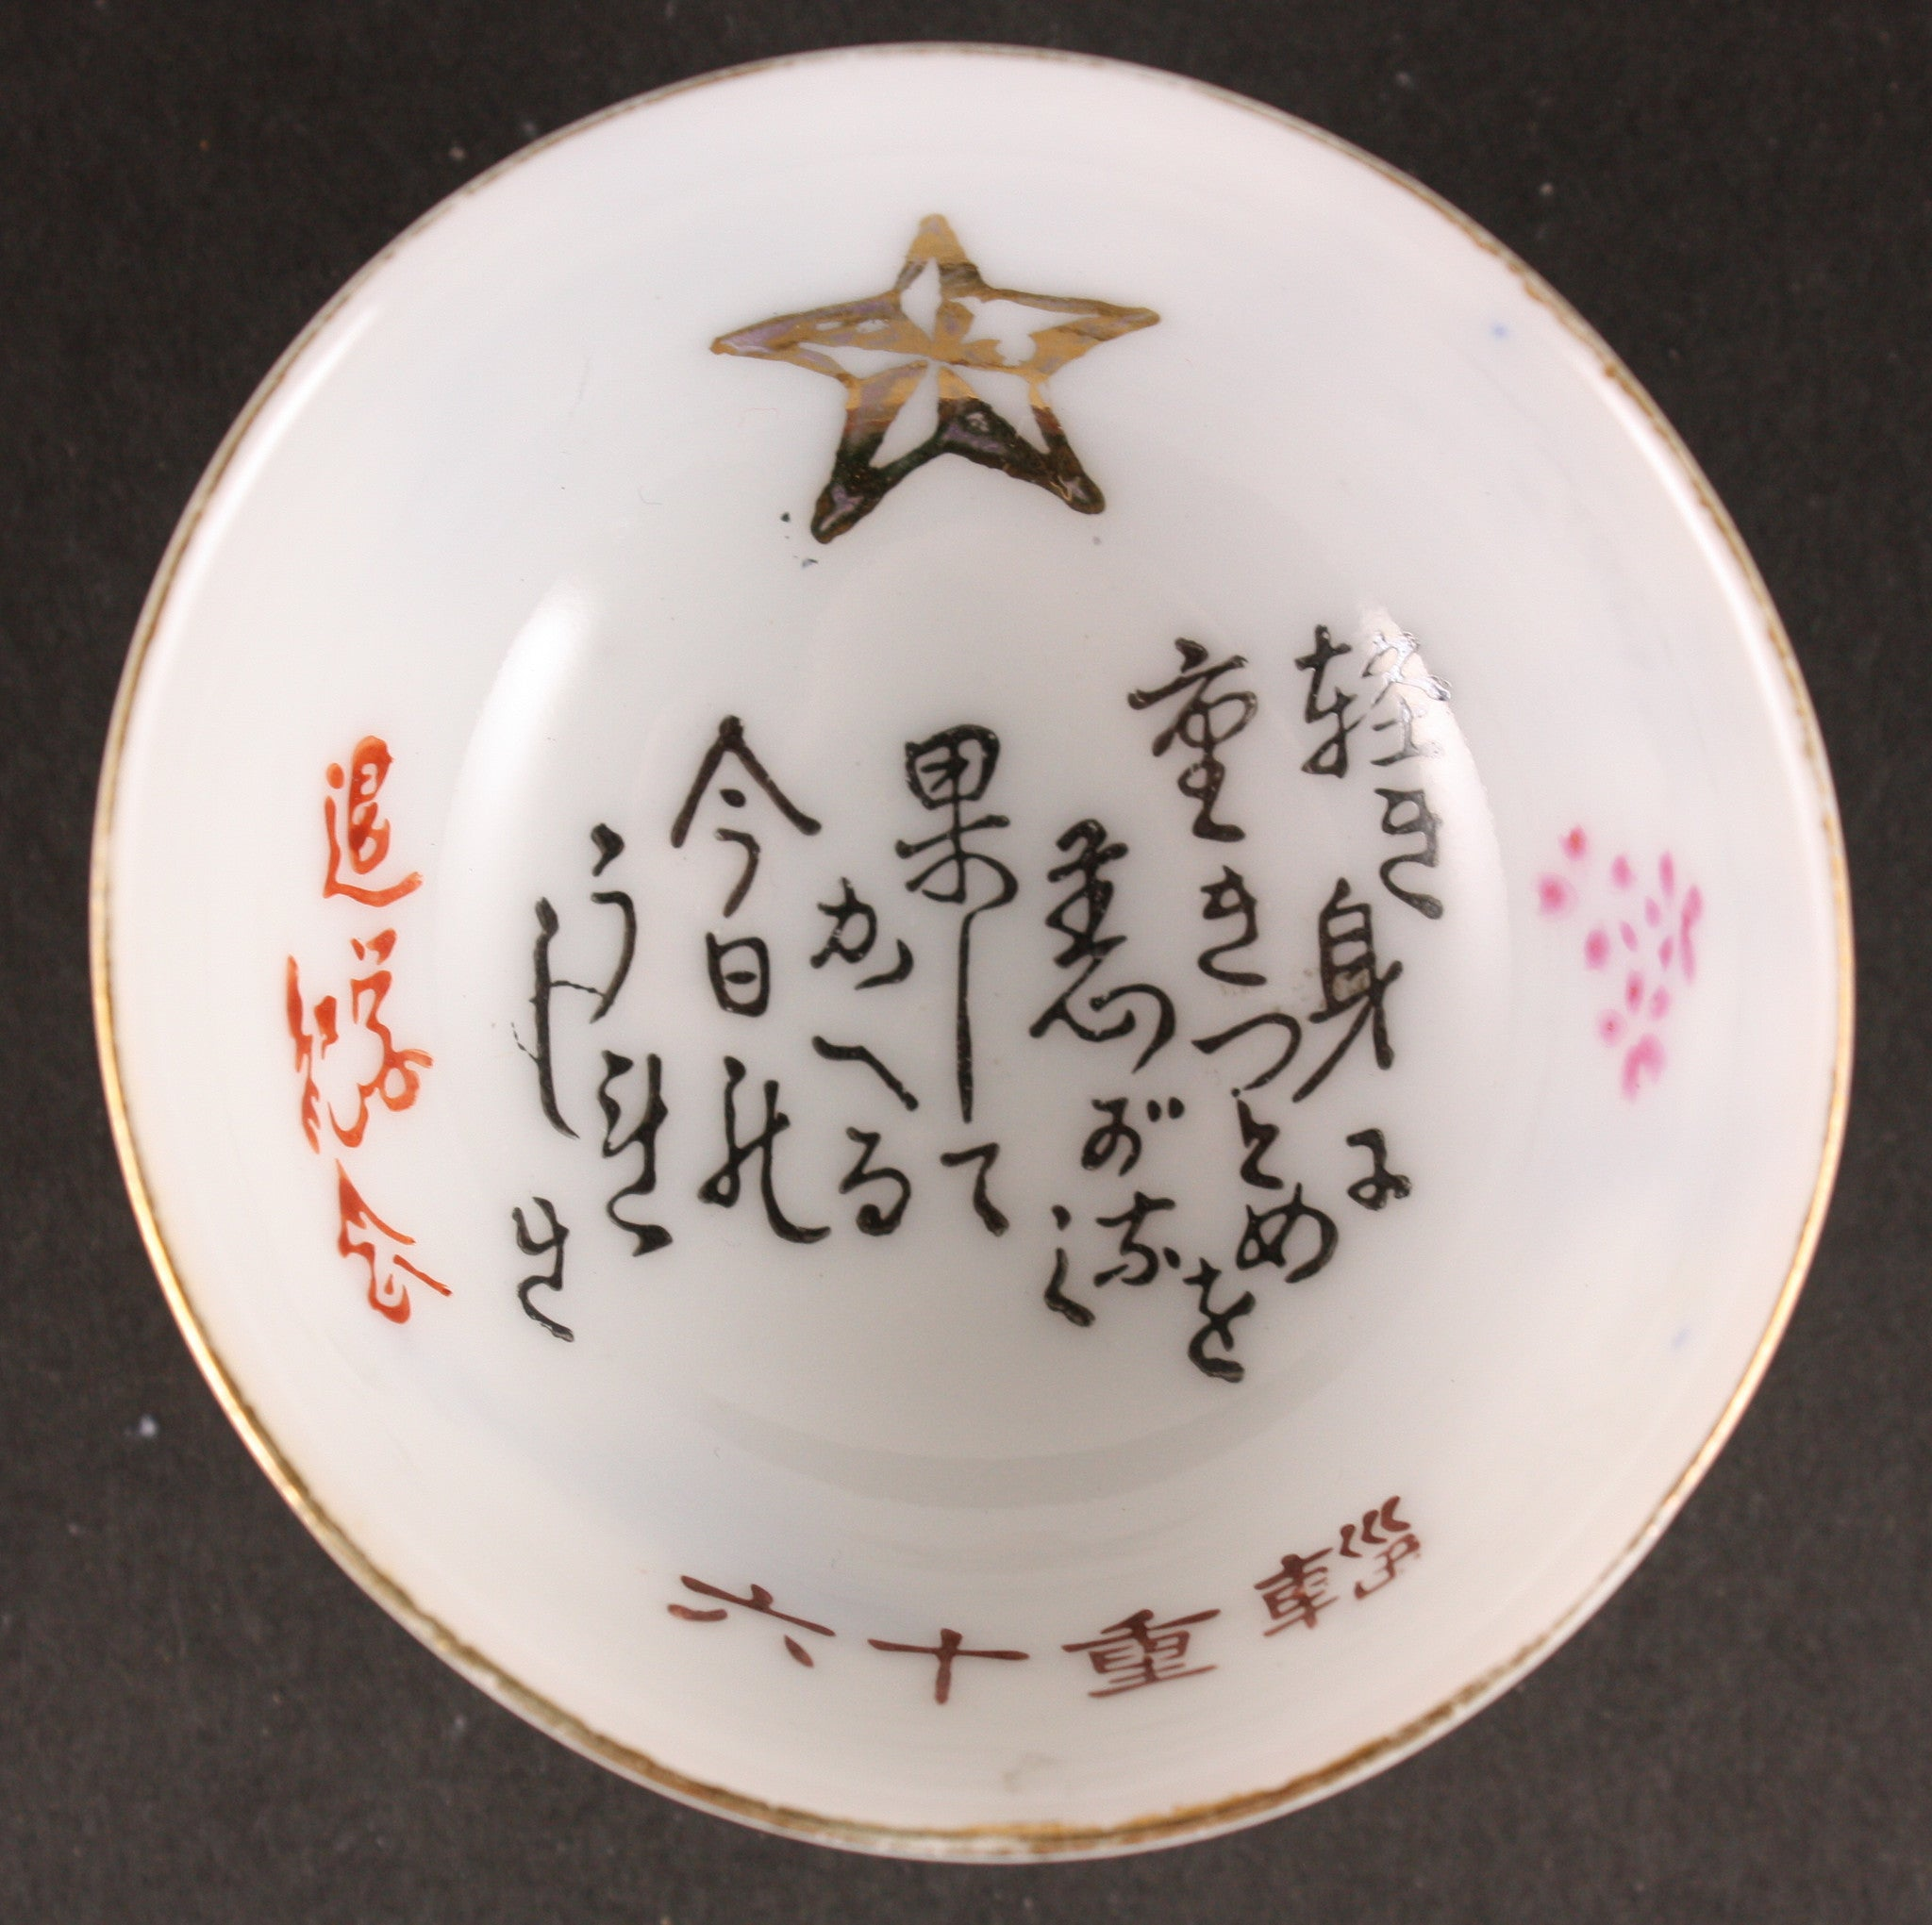 Antique Japanese Military Poem Star Transport Army Sake Cup